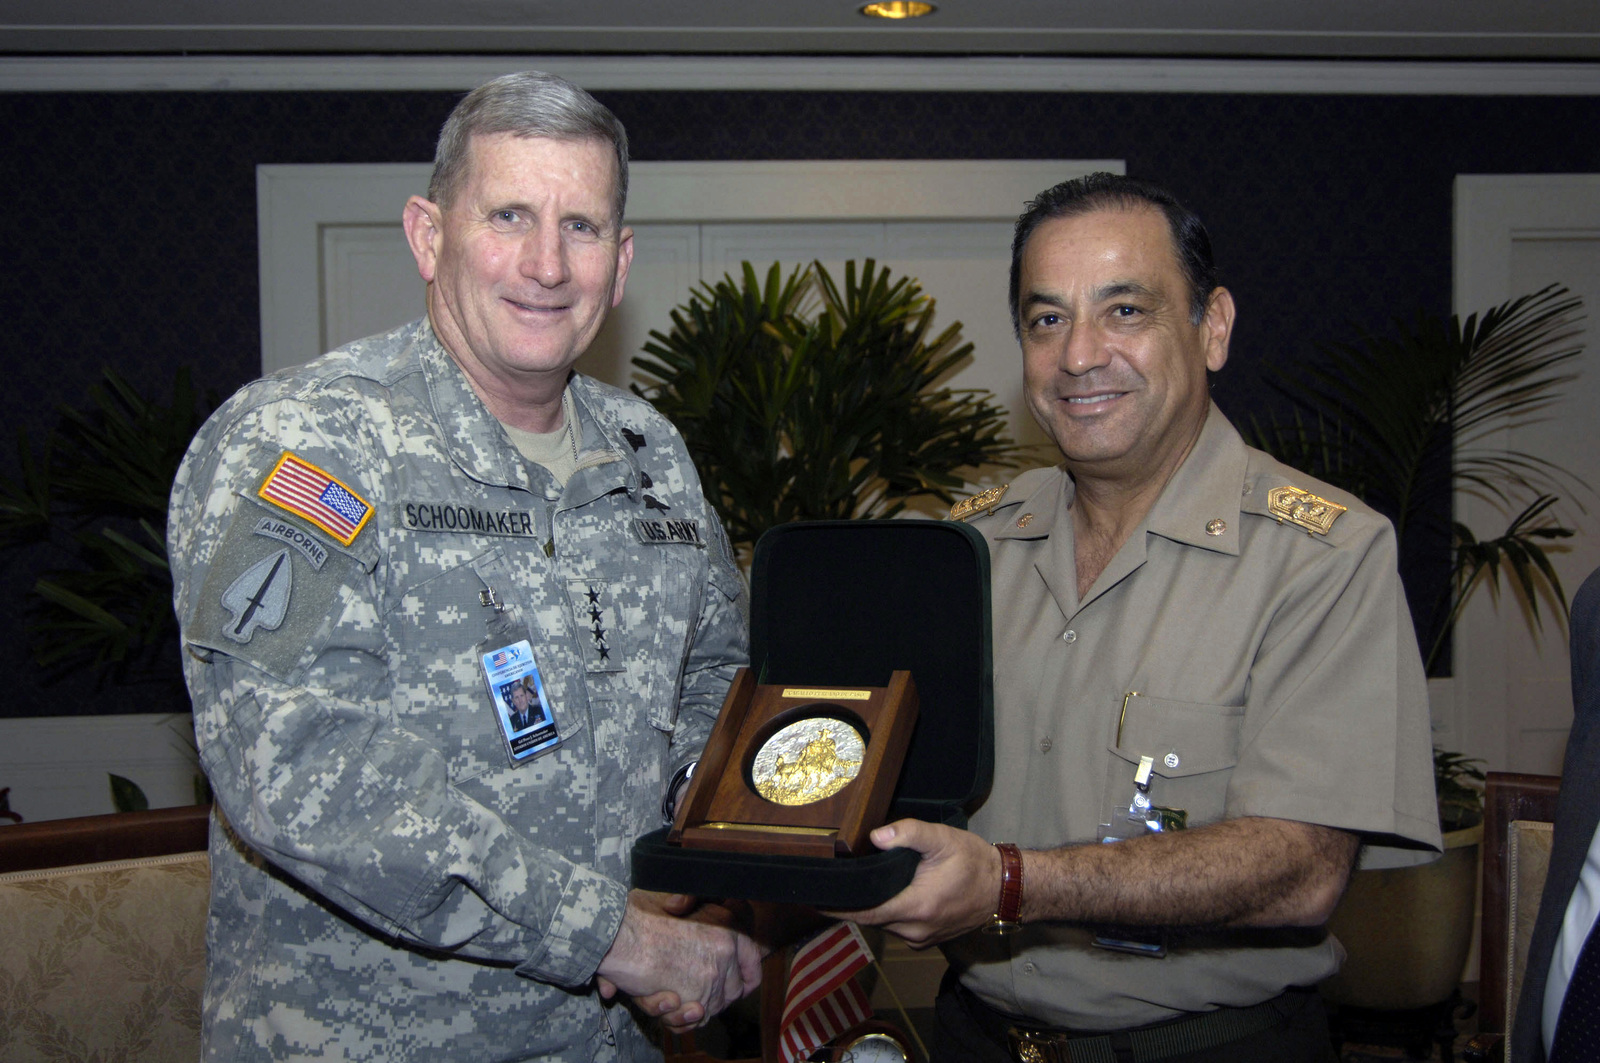 US Army (USA) General (GEN) Peter A. Schoomaker (left), USA CHIEF of STAFF, poses receives a plaque from Peruvian Army GEN Alberto Munoz Diaz, the Peruvian Army CHIEF of STAFF, during the Conference of American Armies Commander's Conference, held in Buenos Aires, Argentina (ARG)